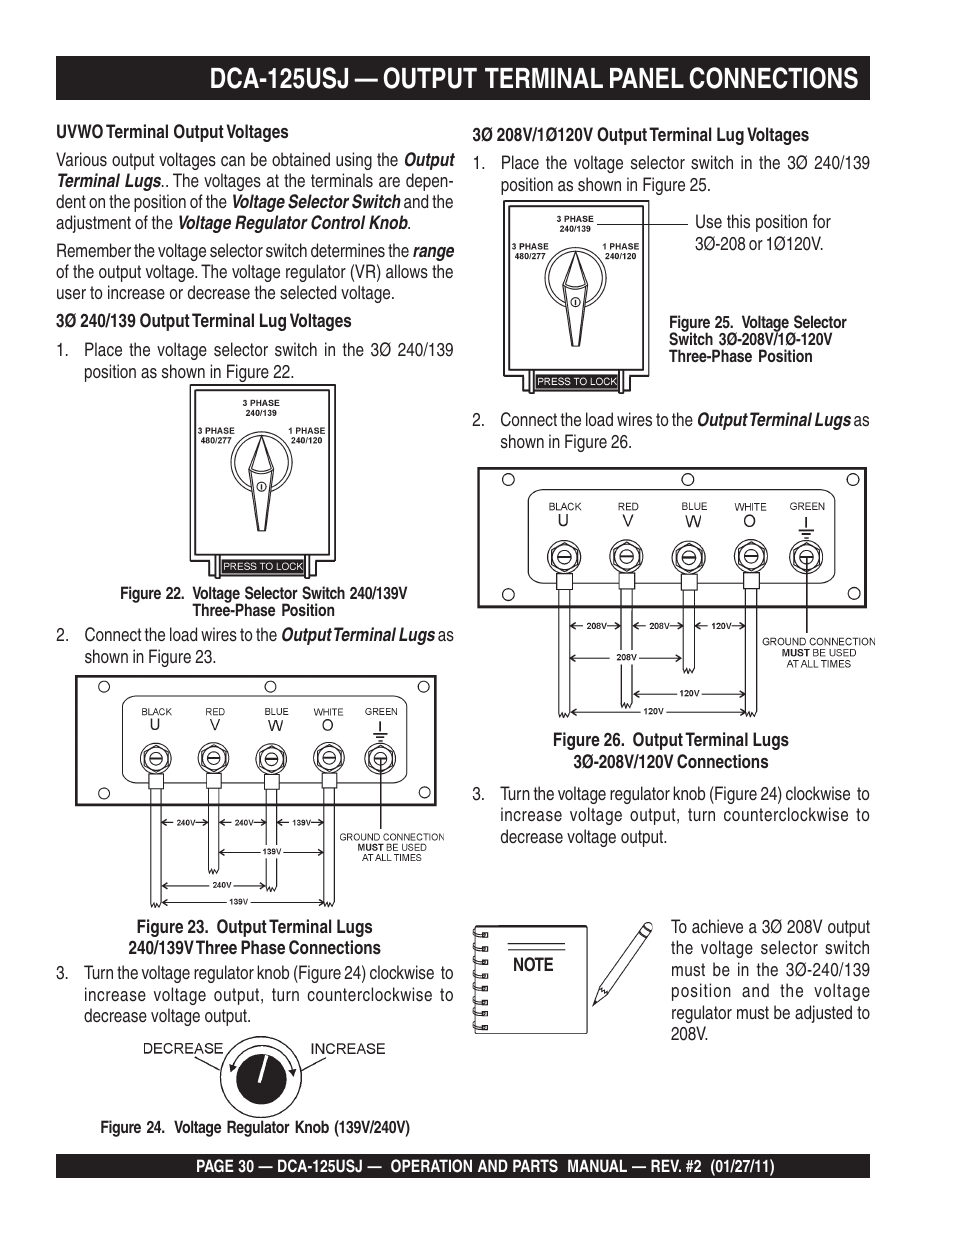 Dca 125usj Output Terminal Panel Connections Multiquip Mq Power 3 Phase Generator Wiring 60 Hz Dca125usj User Manual Page 30 84